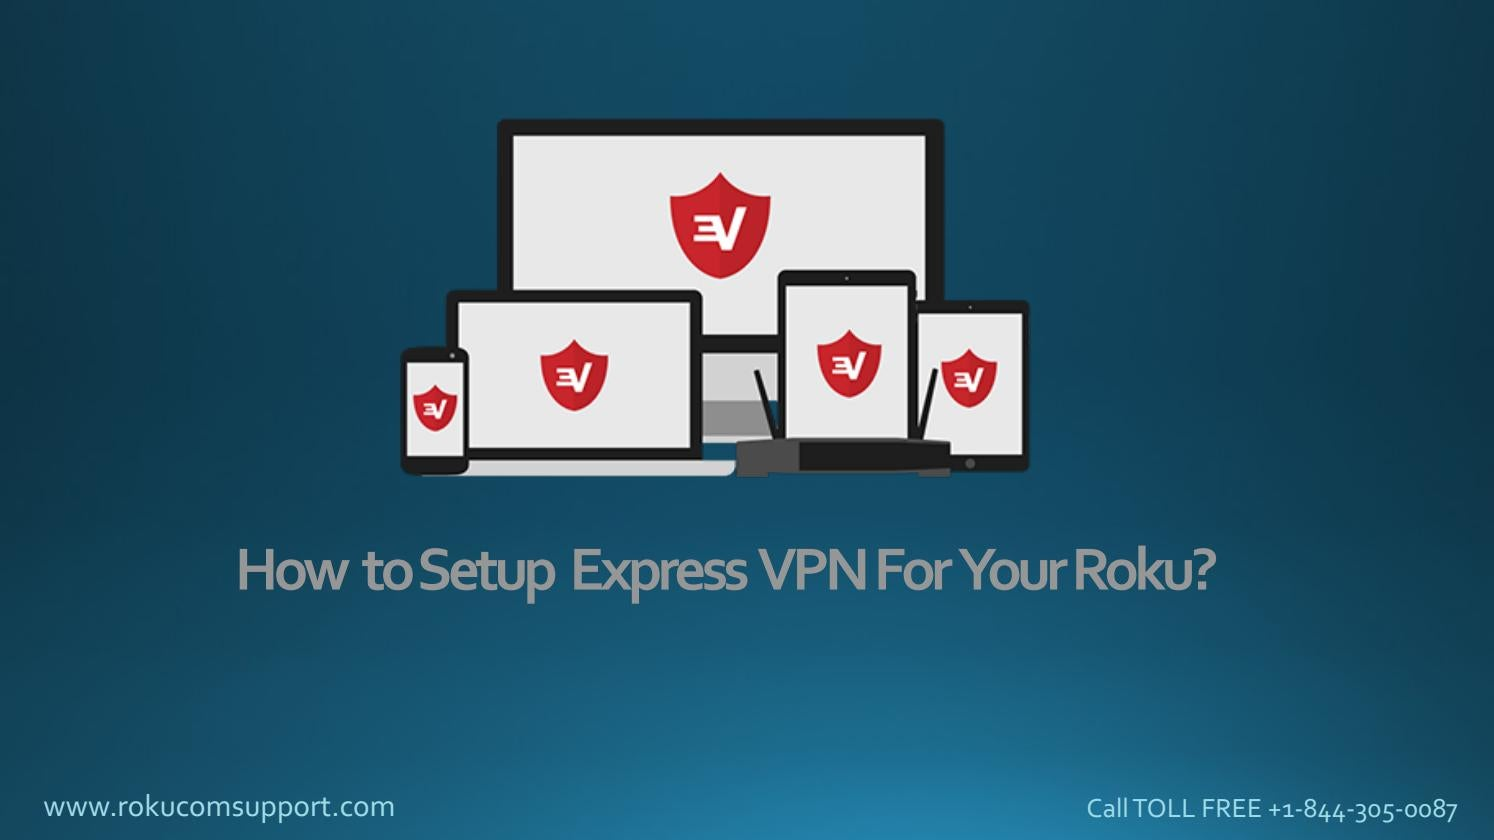 How to setup express vpn for your roku streaming player by Rokucom